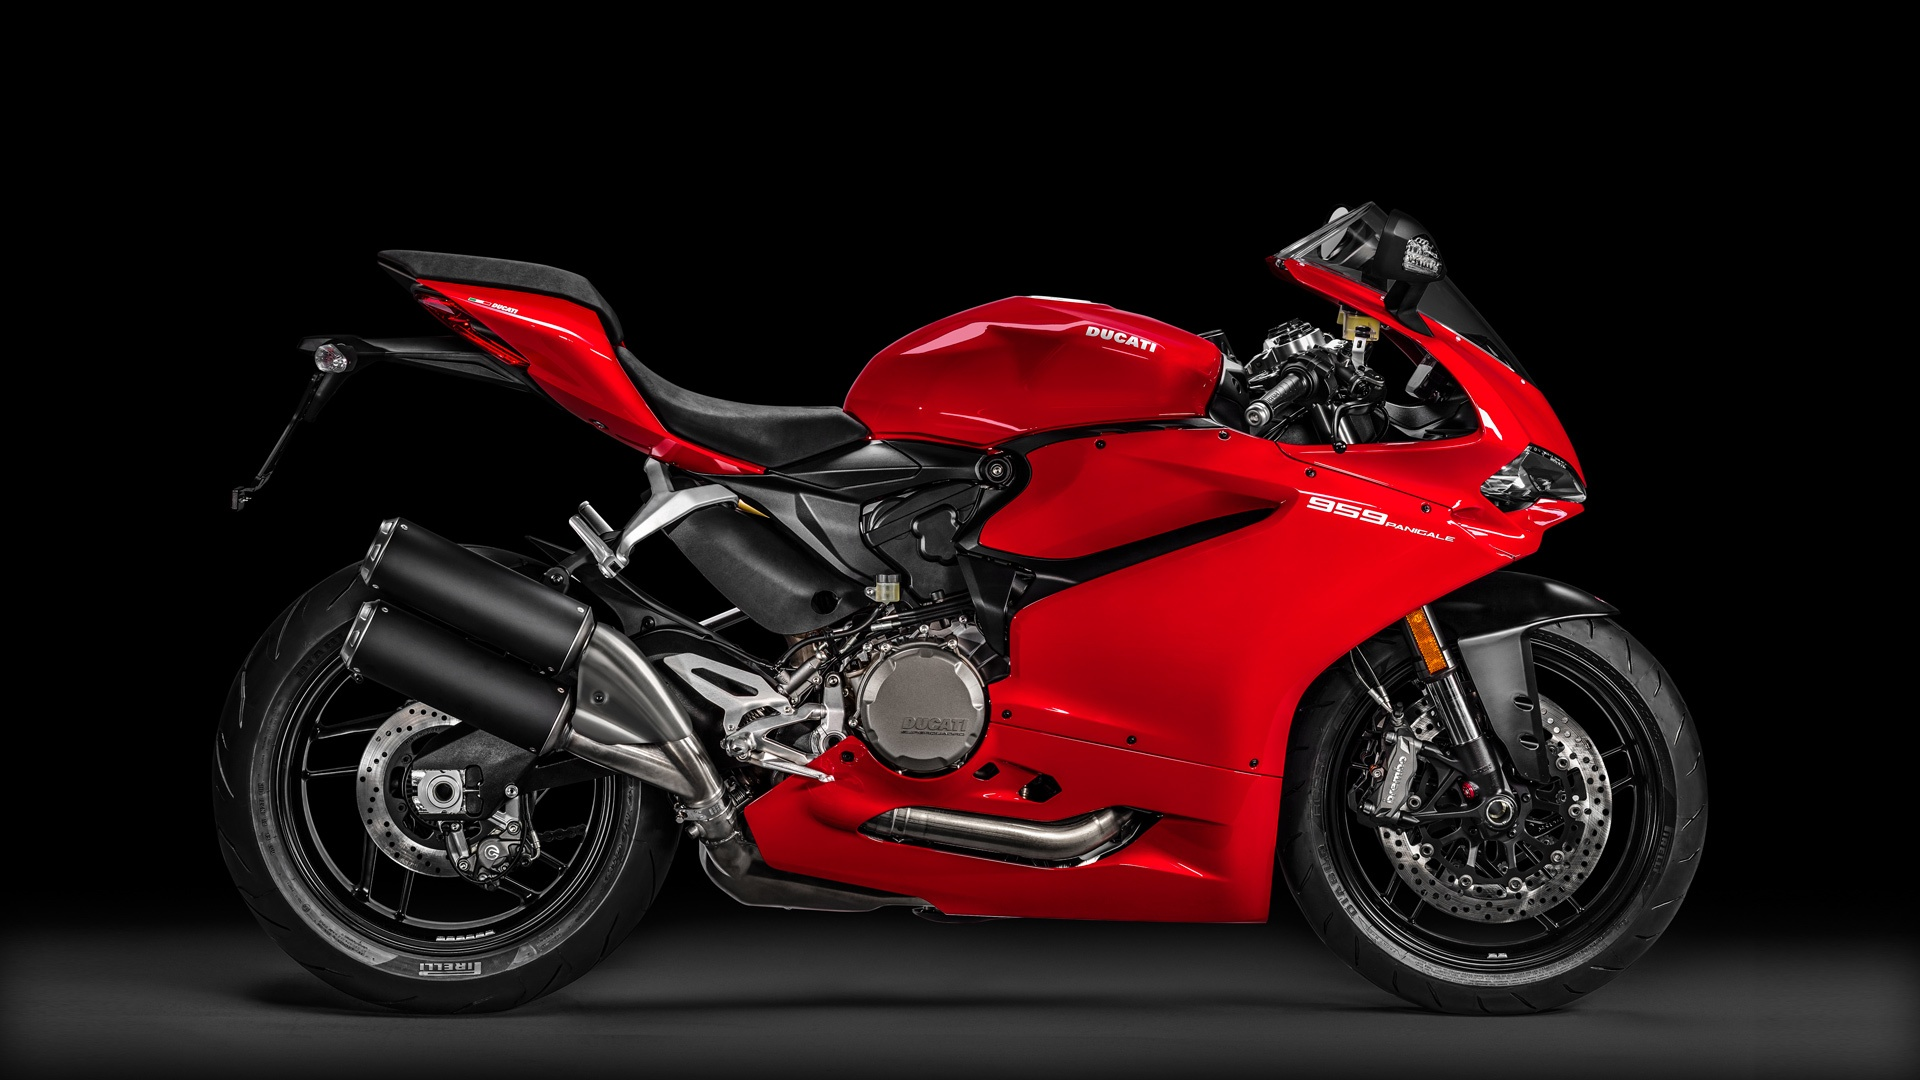 2017 Ducati 959 Panigale for sale at Ducati Preston, Lancashire, Scotland